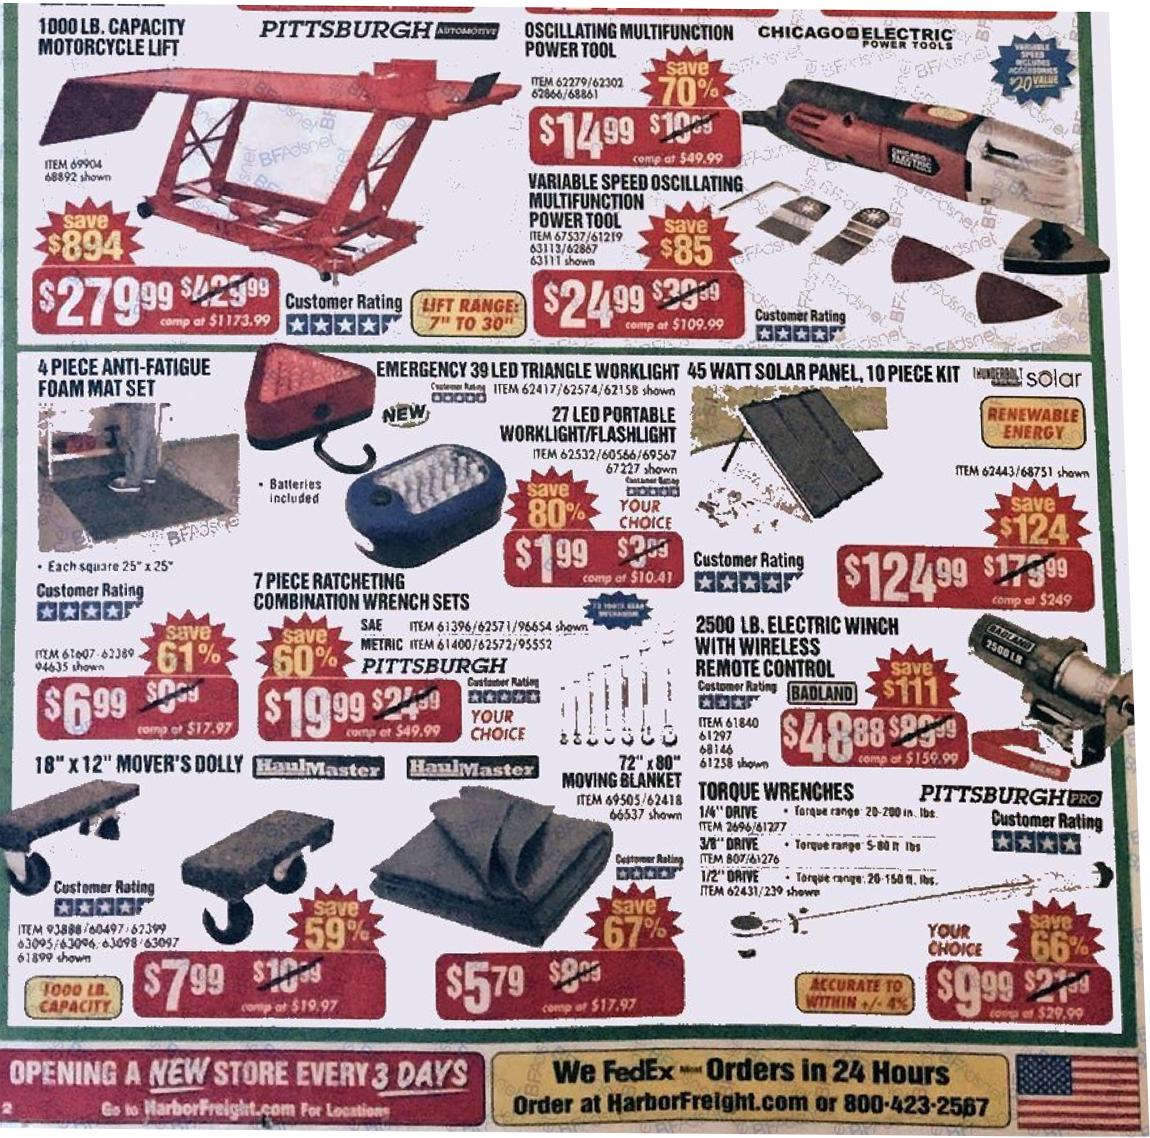 Harbor Freight Tools is a privately held discount tool and equipment retailer, headquartered in Calabasas, California, which operates a chain of retail stores as well as a mail-order and eCommerce business. The company has over stores in 47 states.